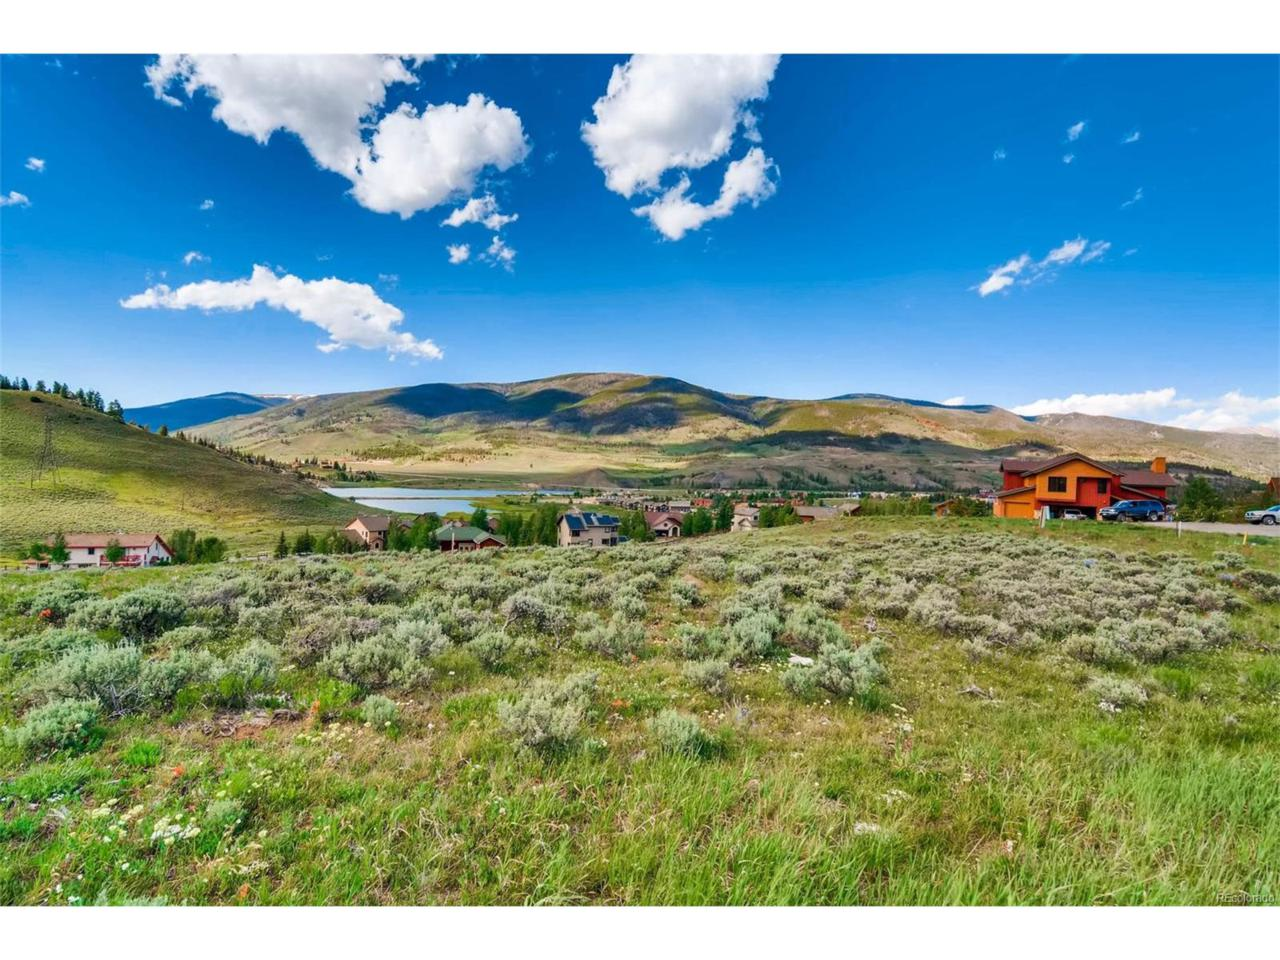 103 Mule Deer Court, Dillon, CO 80435 (MLS #9981598) :: 8z Real Estate